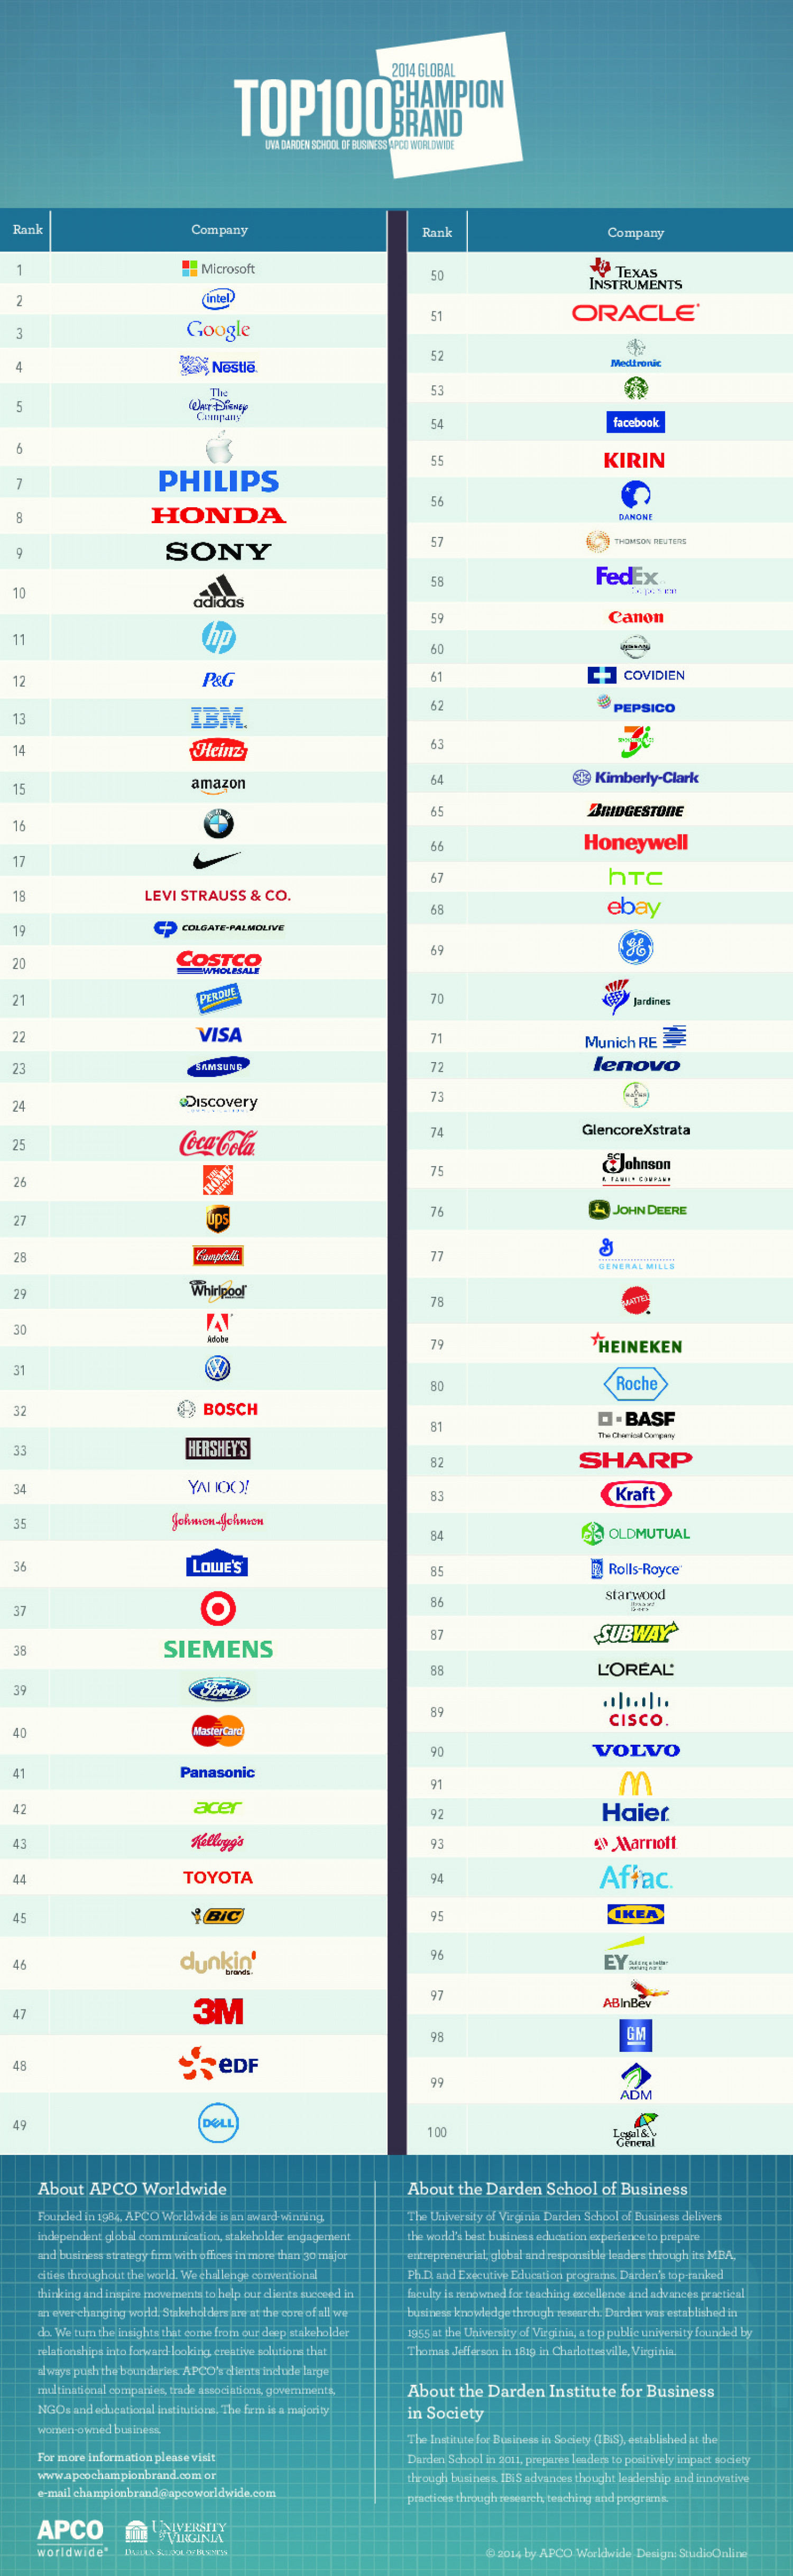 Top 100 Global Champion Brands 2014 Infographic